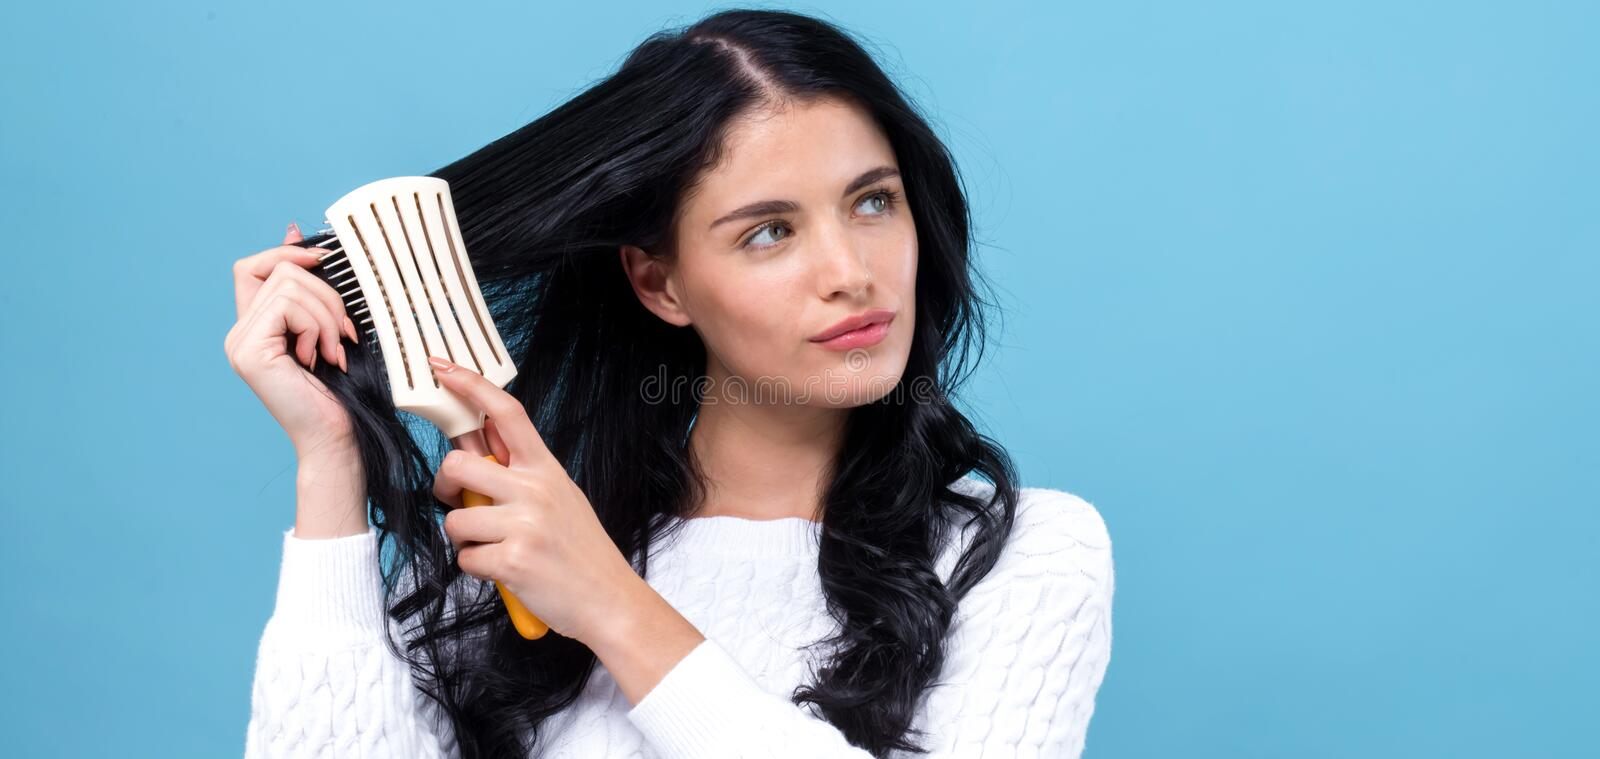 Beautiful young woman holding a hairbrush royalty free stock photos